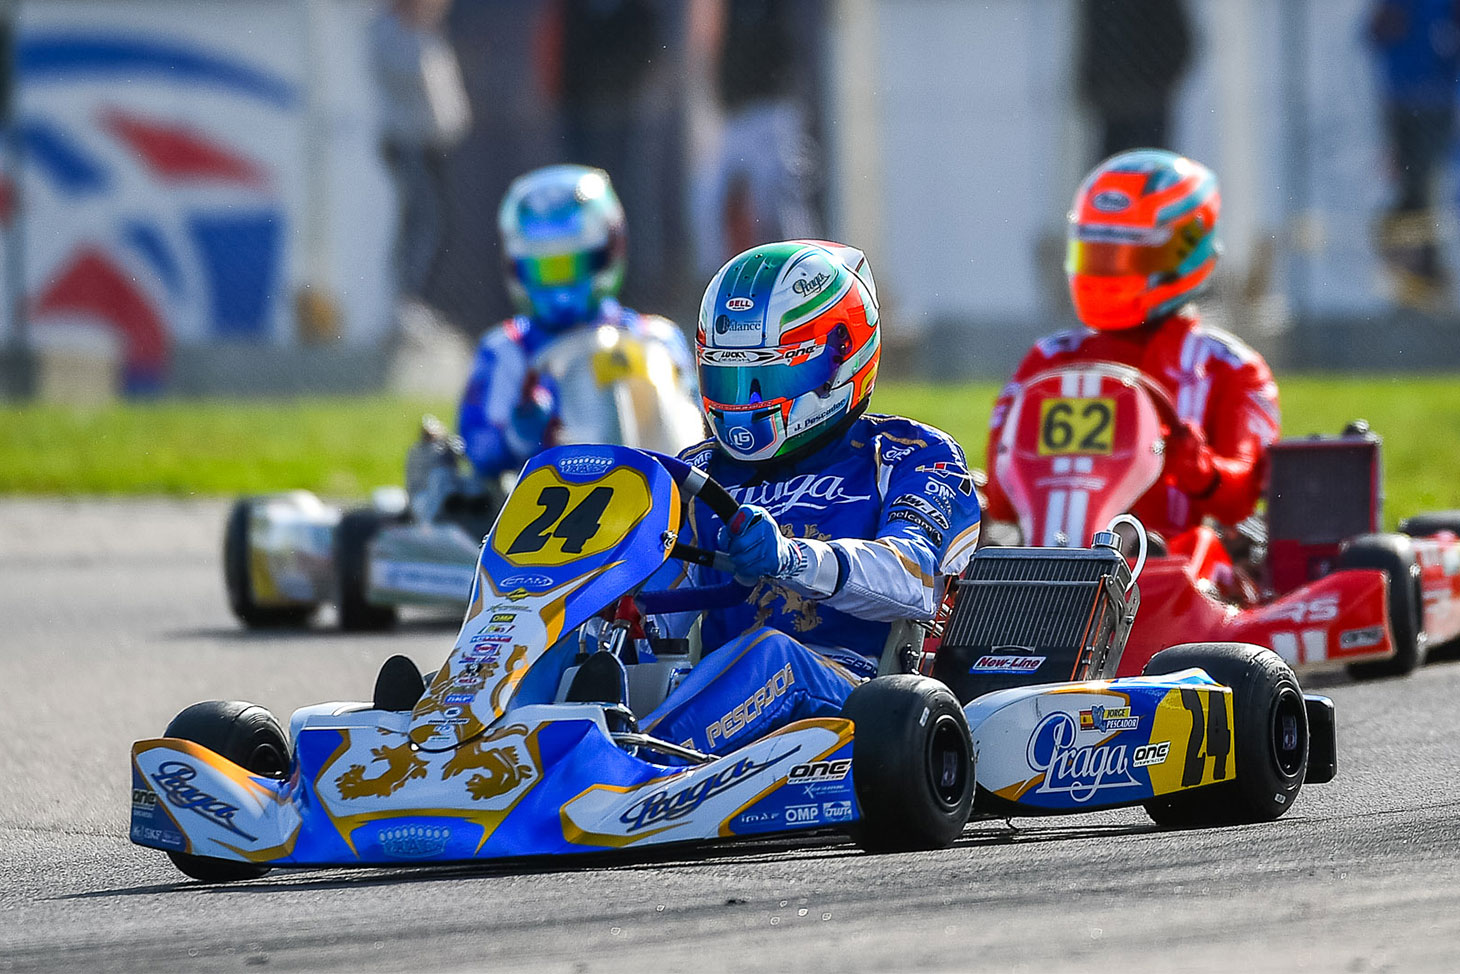 Praga and IPK at the top of the FIA Karting World Championship